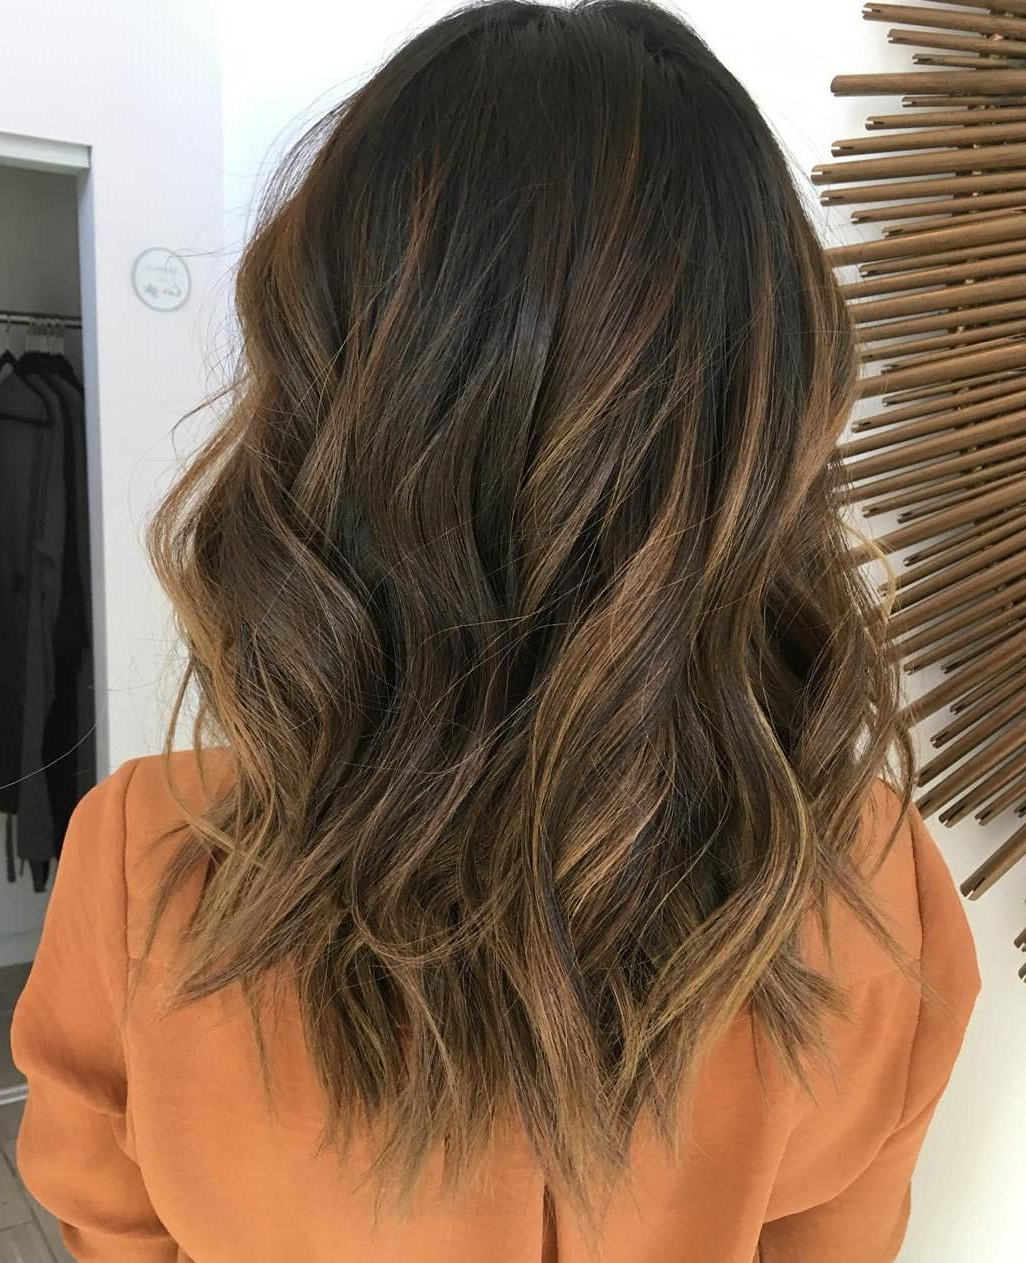 60 Balayage Hair Color Ideas With Blonde, Brown, Caramel And Red Inside Fashionable Caramel Lob Hairstyles With Delicate Layers (View 3 of 20)